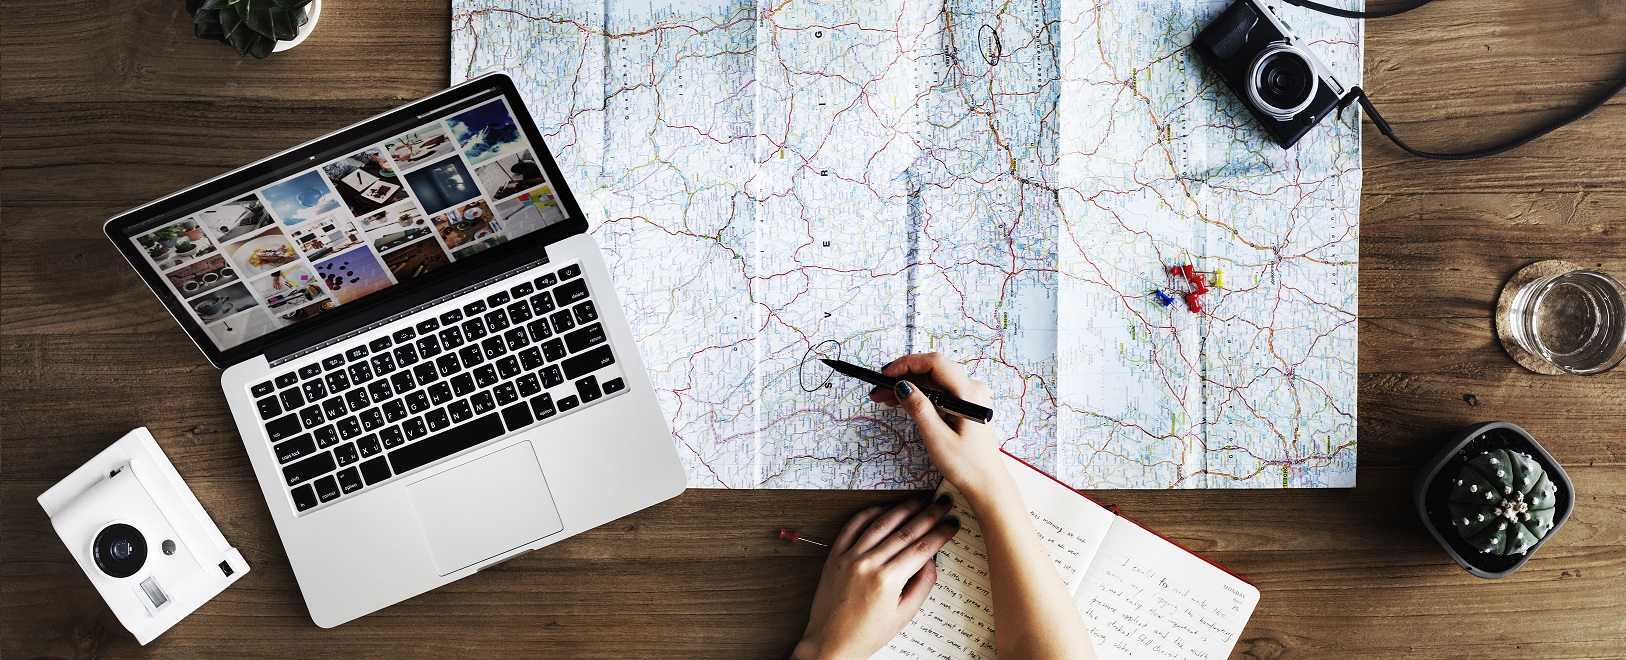 How Travel Brands Can Win At Content Marketing In 2018